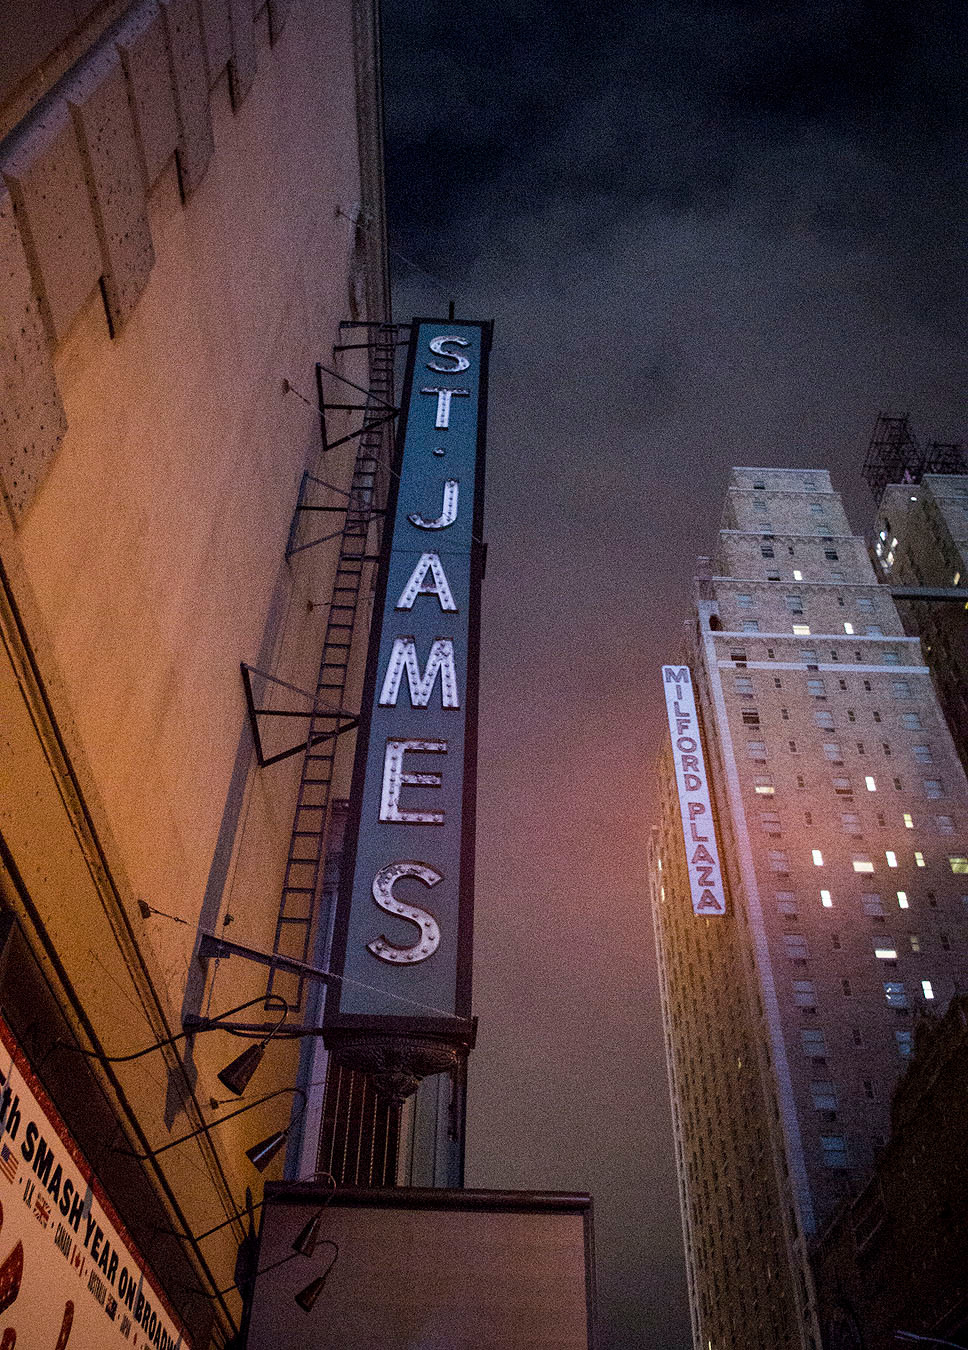 St James Theater New York at night